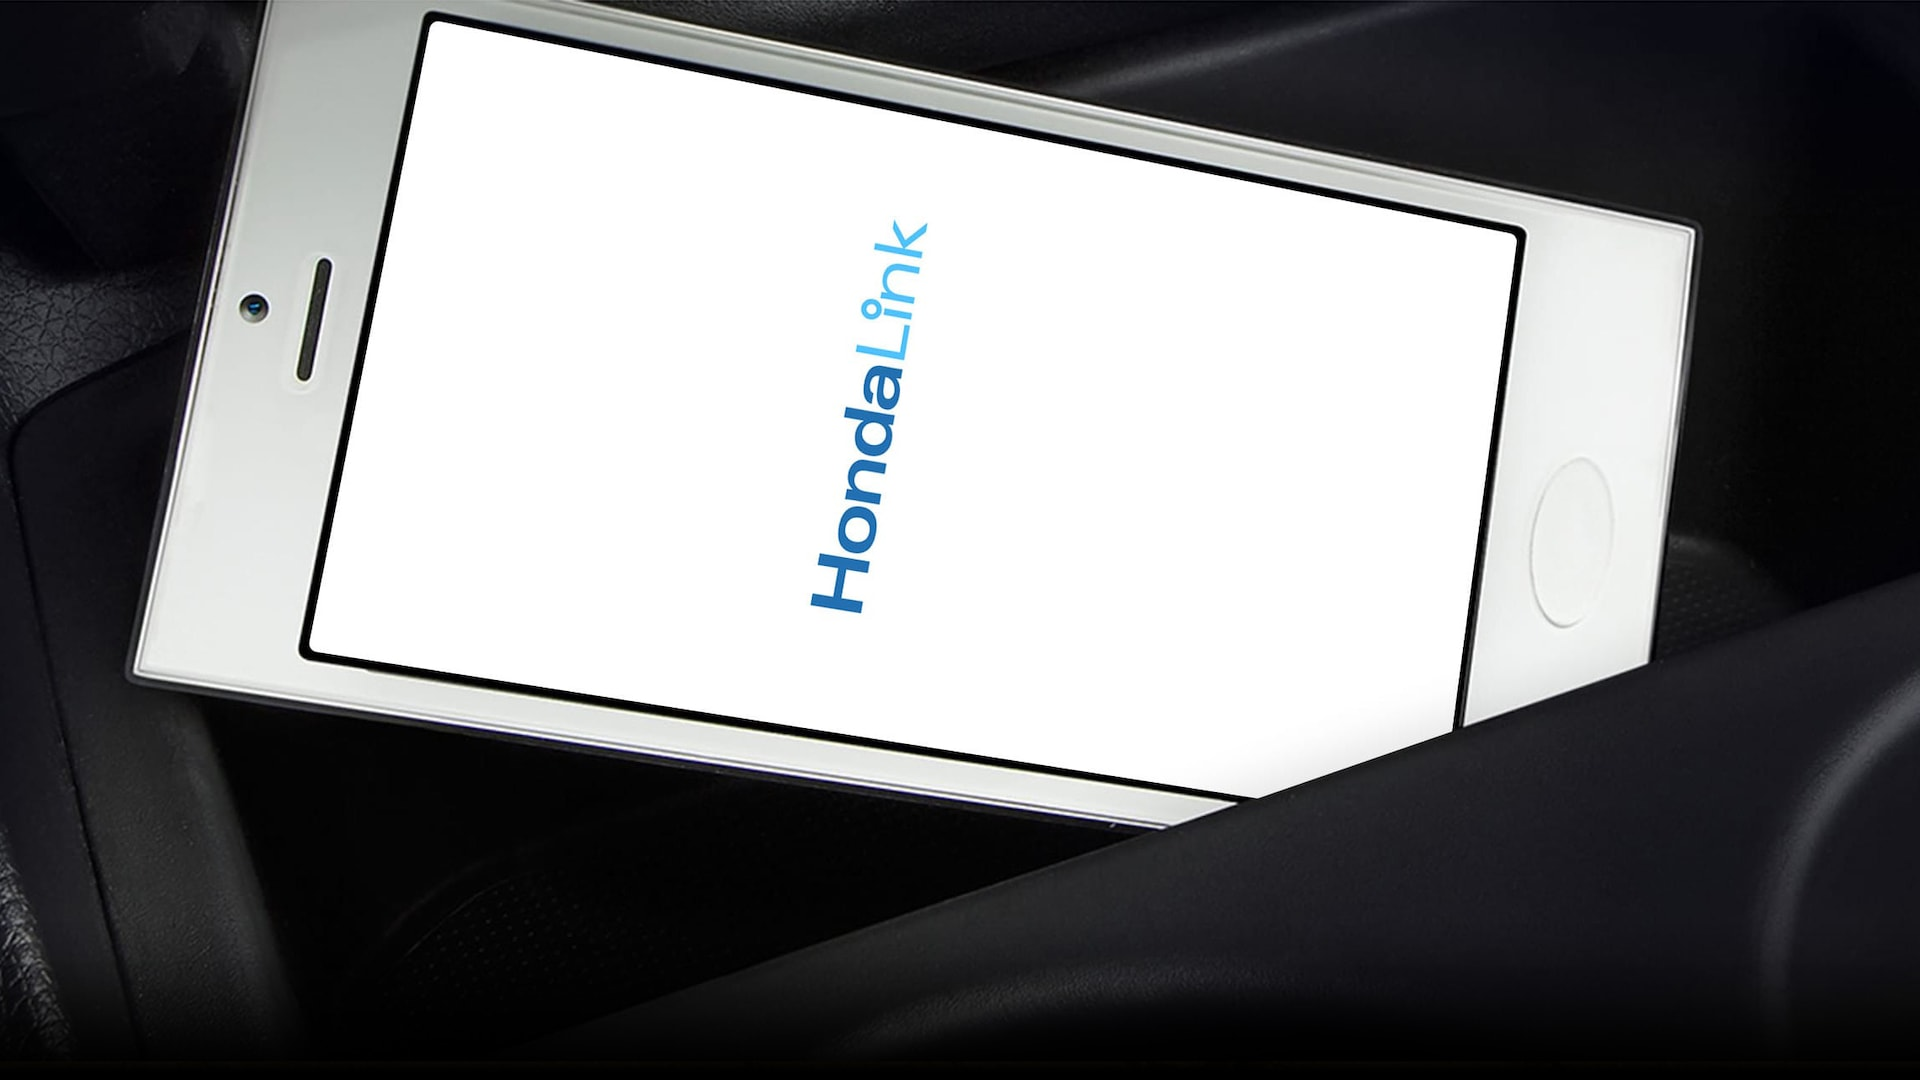 HondaLink® welcome screen detail on smartphone, available to connect with the 2020 Honda Civic Coupe.